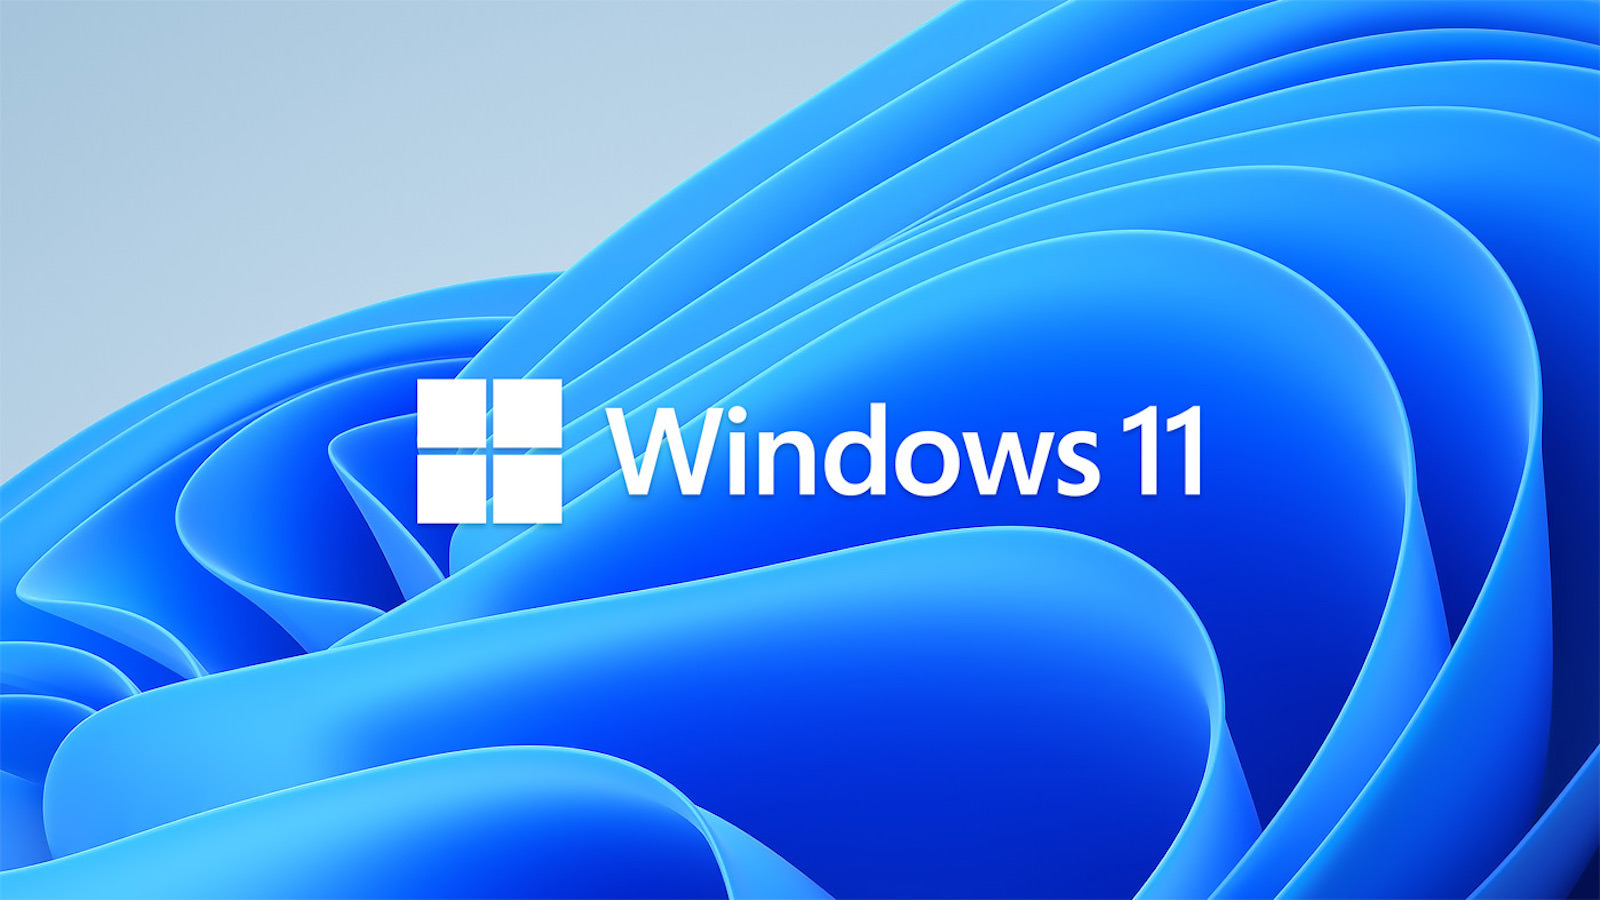 Windwos 11 Microsoft official